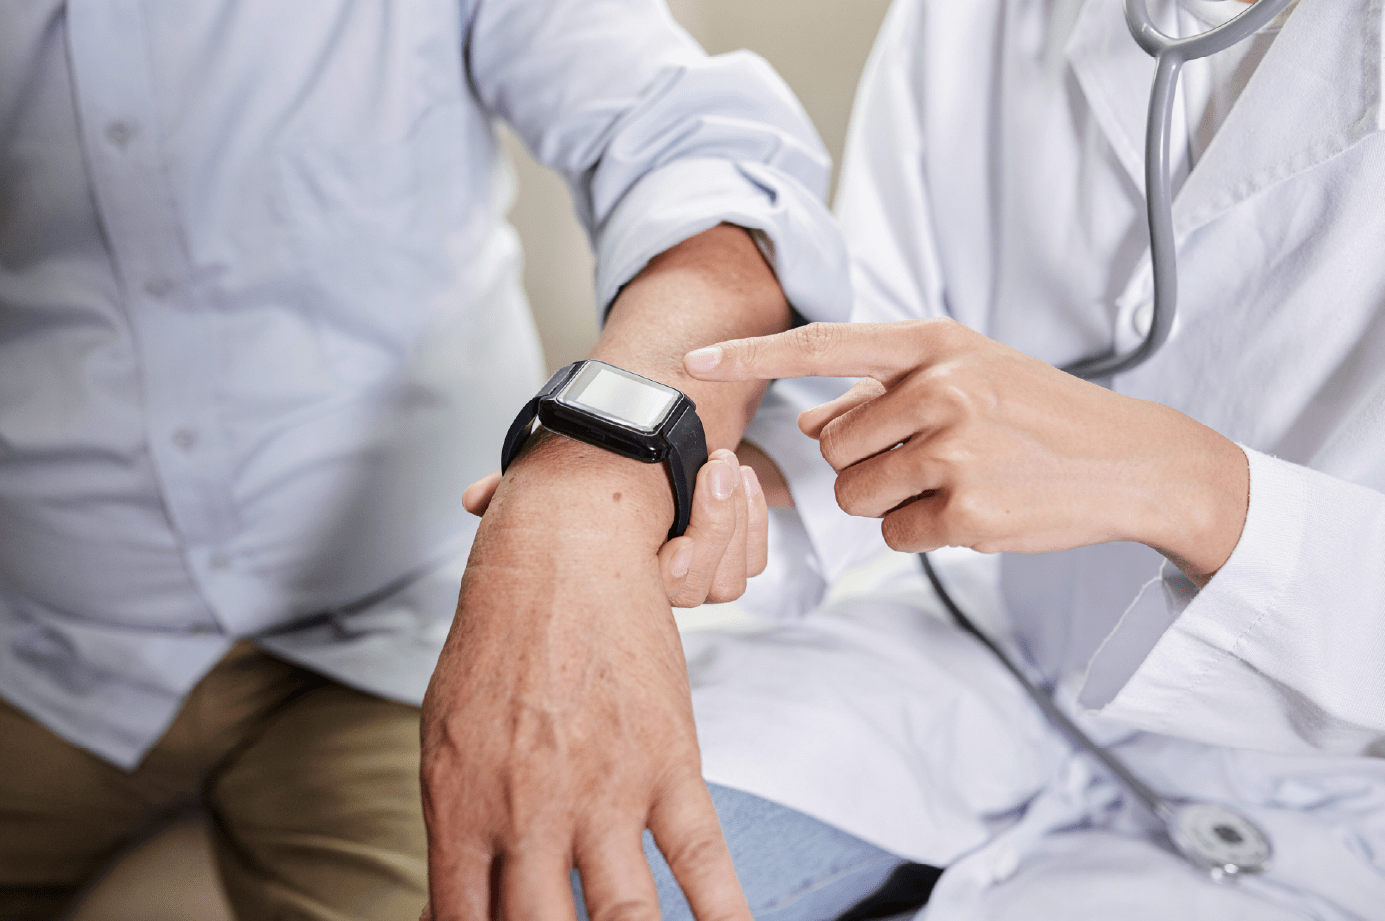 CARDIOLOGIST: DEMAND FOR WEARABLE DEVICES IS GROWING